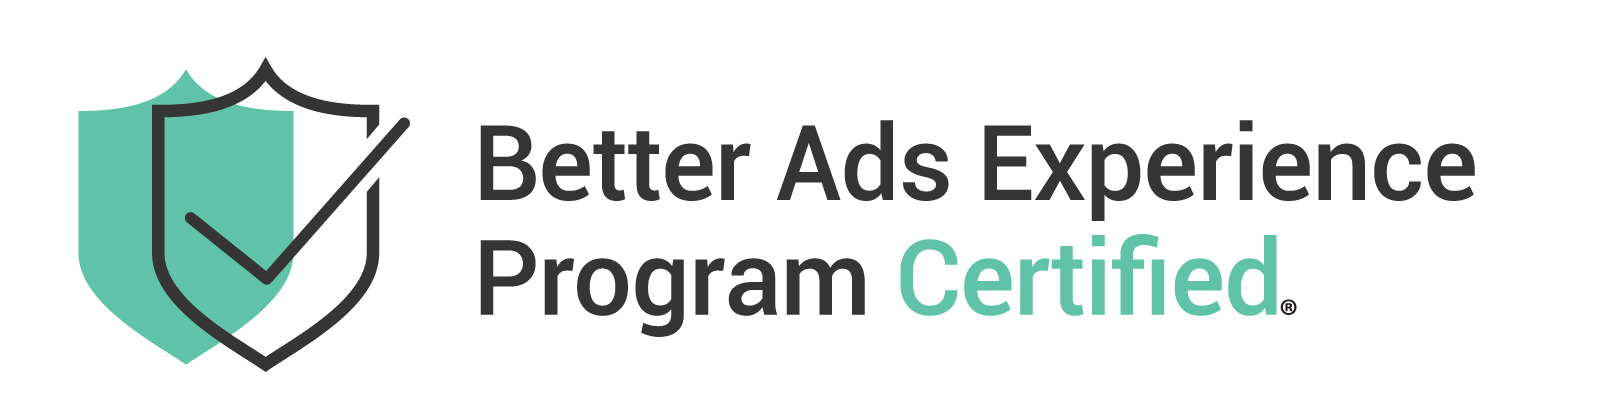 CBA Better Ads Experience Program Certified Badge